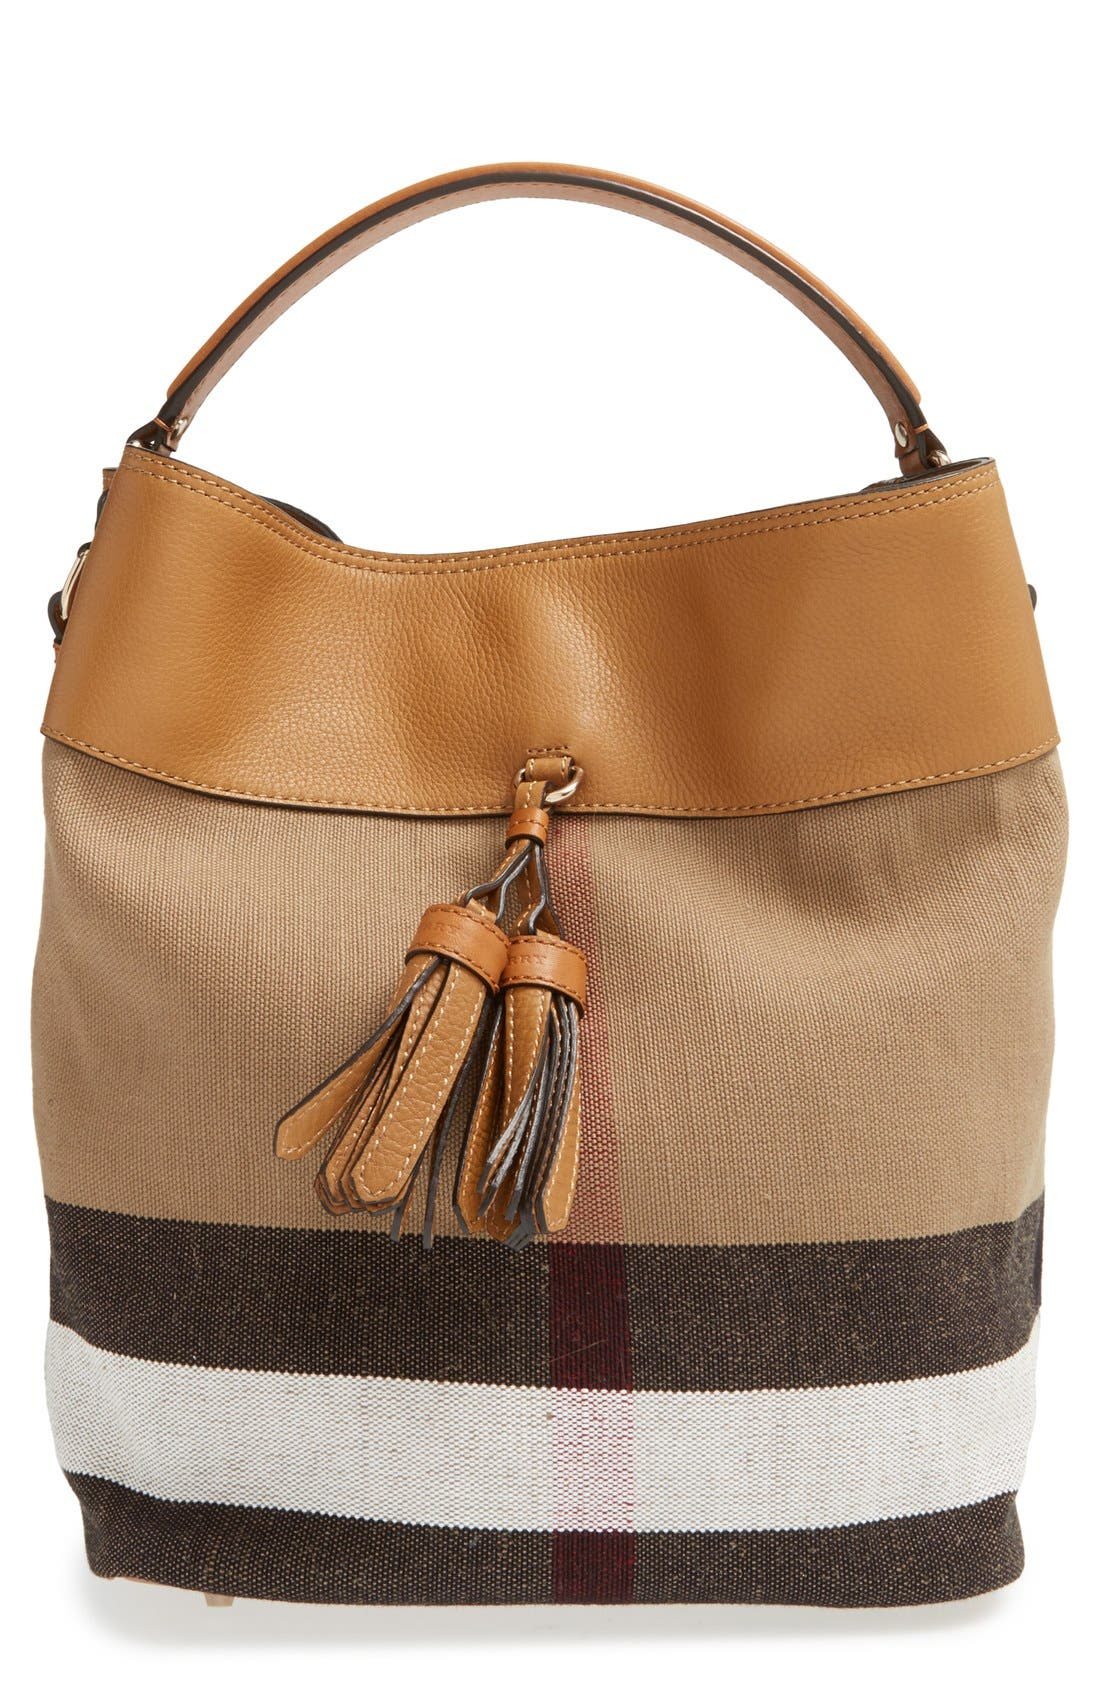 Alternate Image 1 Selected - Burberry Medium Ashby Bucket Bag